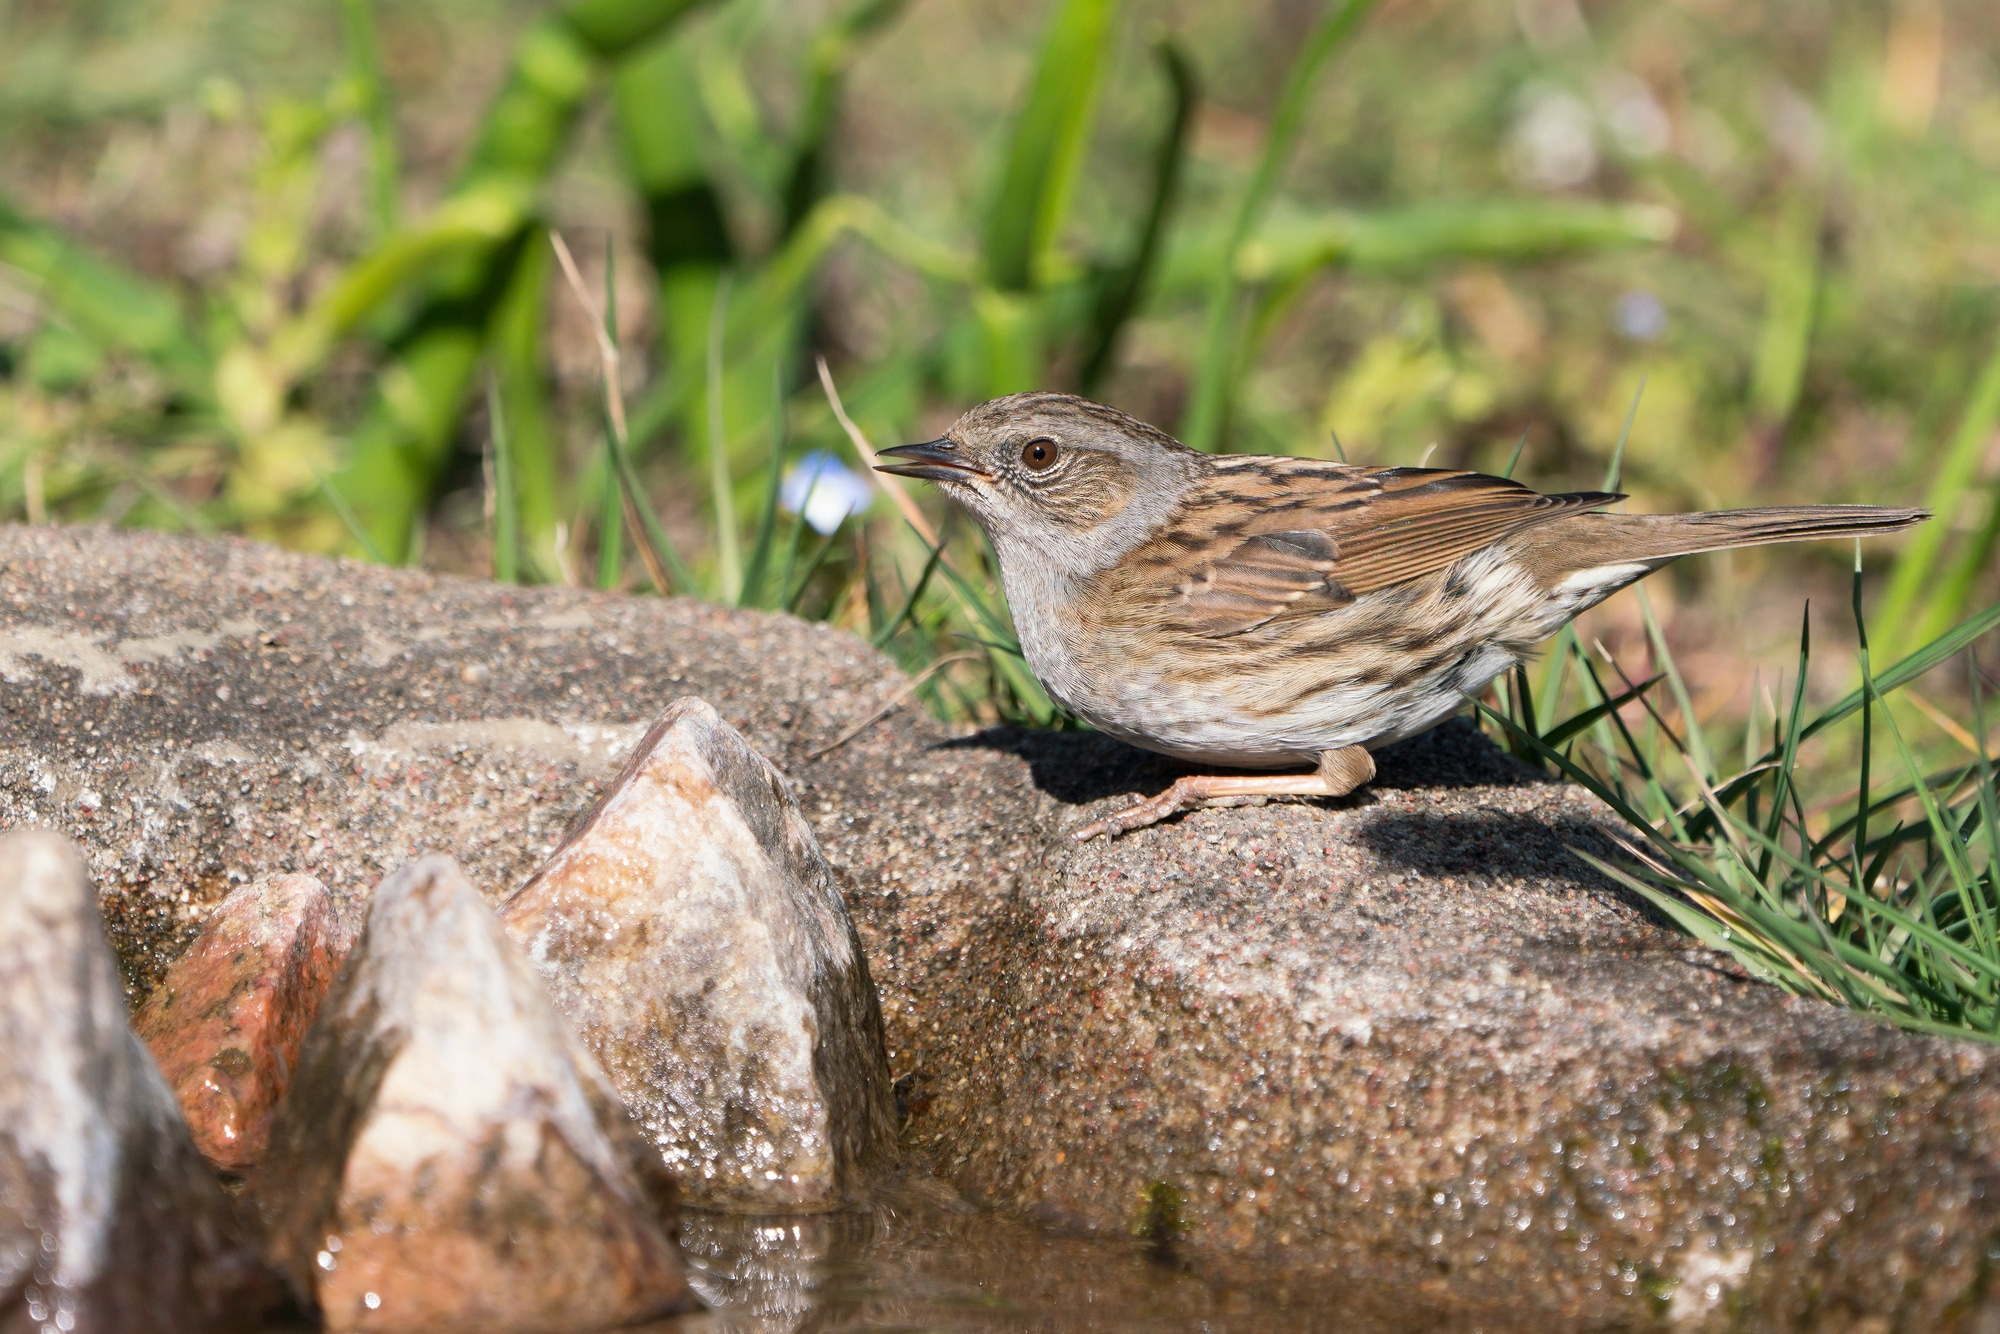 Dunnock bird sitting at the edge of water with half open beak after drinking with blurred vegetation in the background